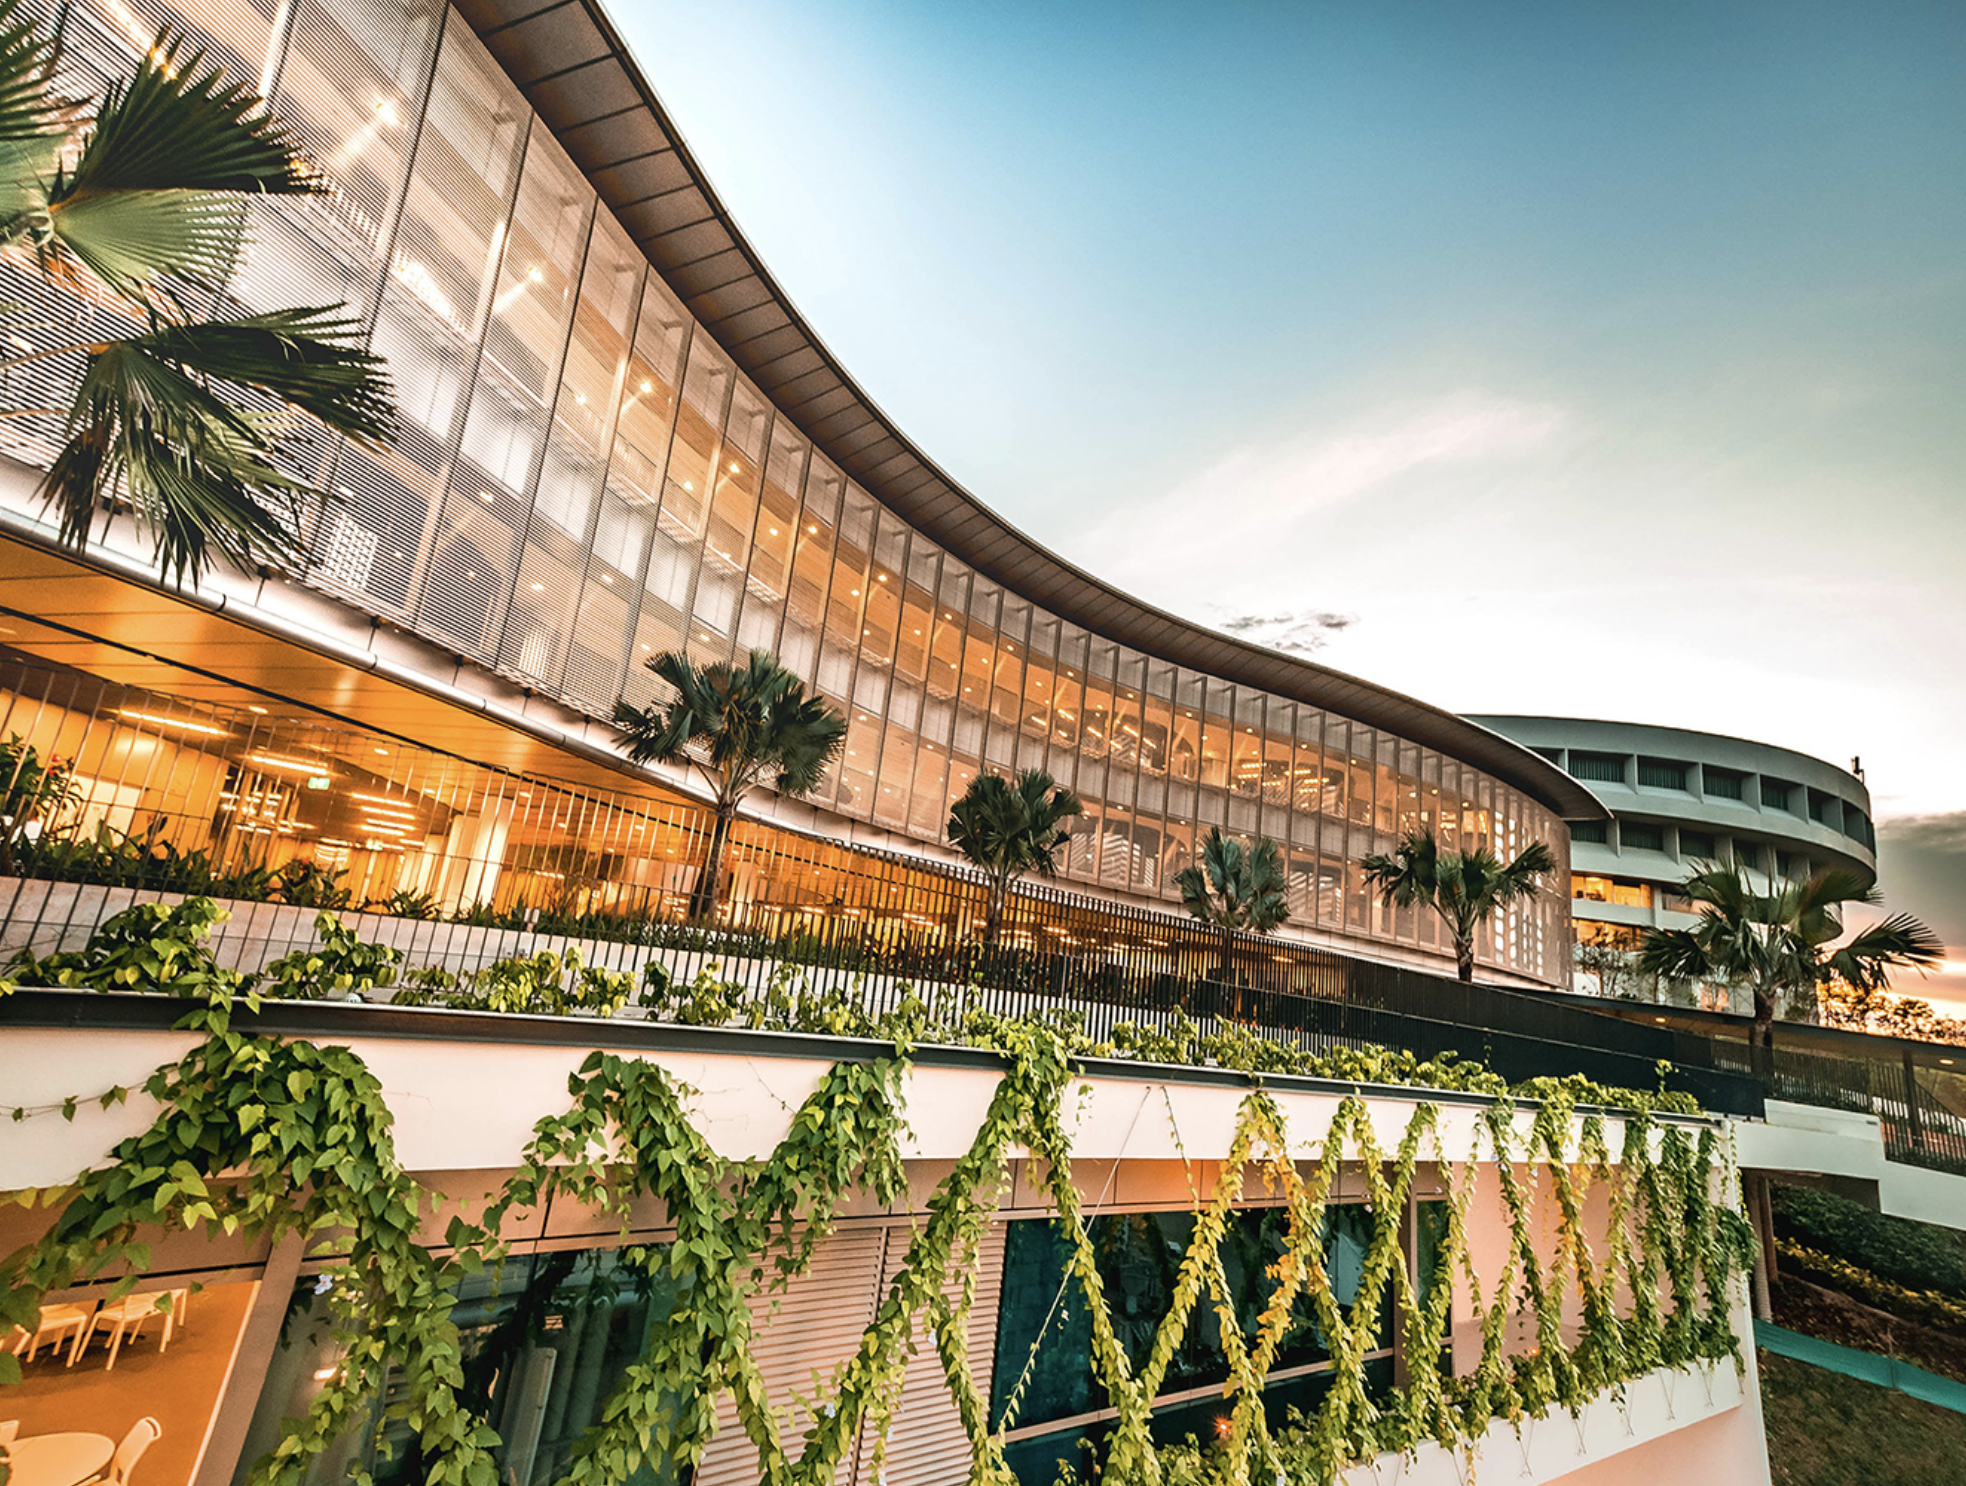 NTU Singapore has topped the QS rankings of the world's young universities for the sixth consecutive year. Pictured here is its latest learning hub, The Arc. Photo courtesy: NTU